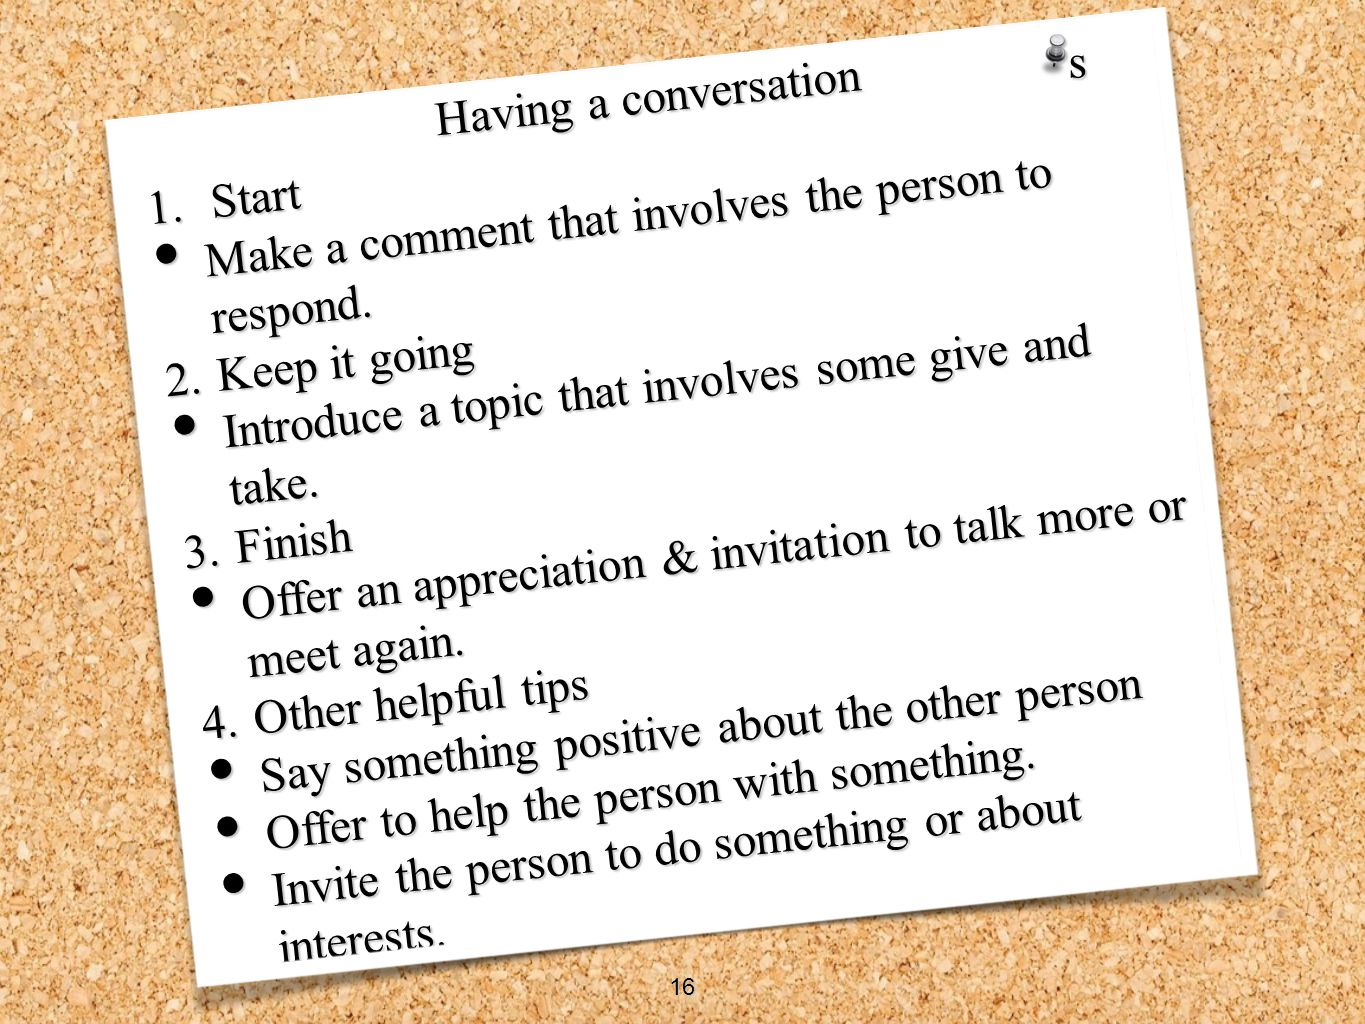 Make a comment that involves the person to respond. Start